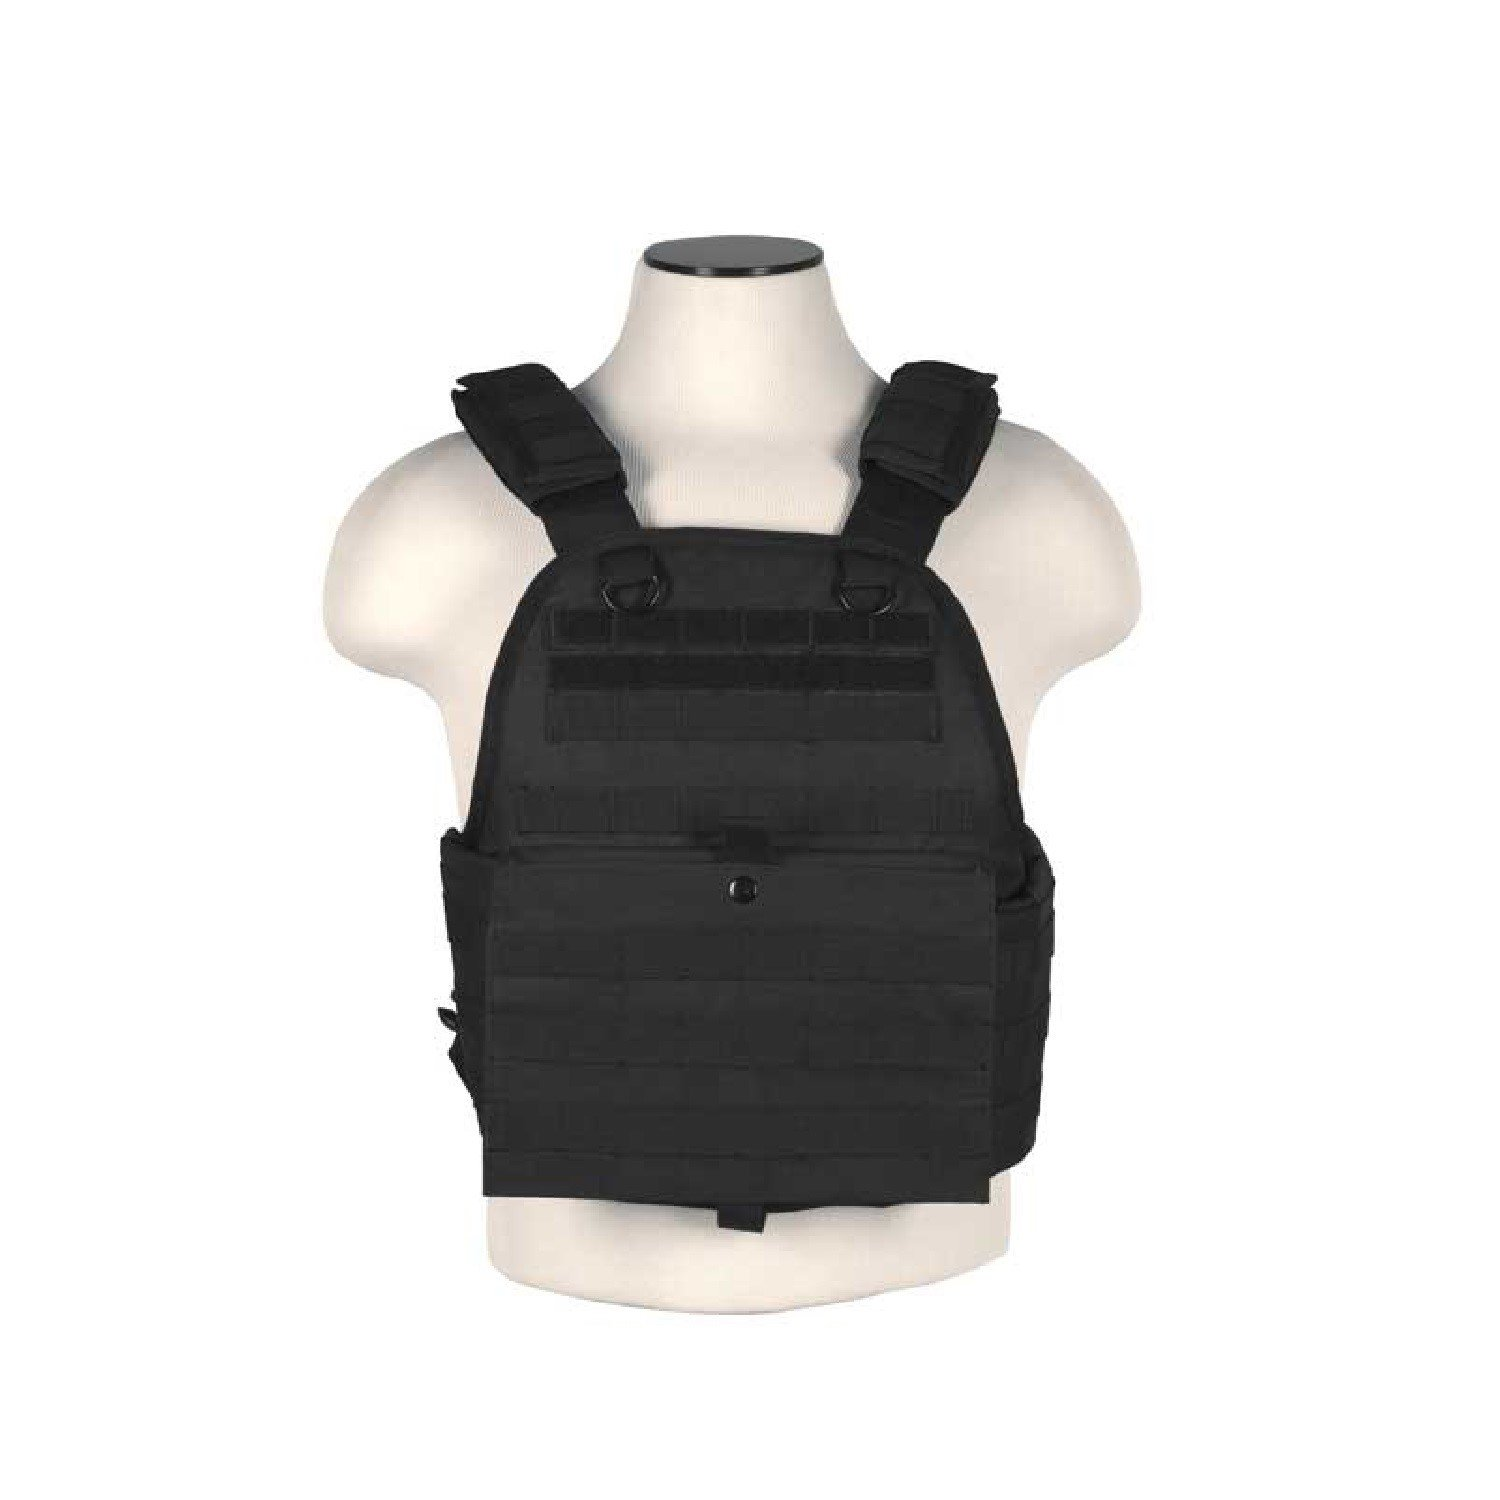 Plate Carrier Vest Black